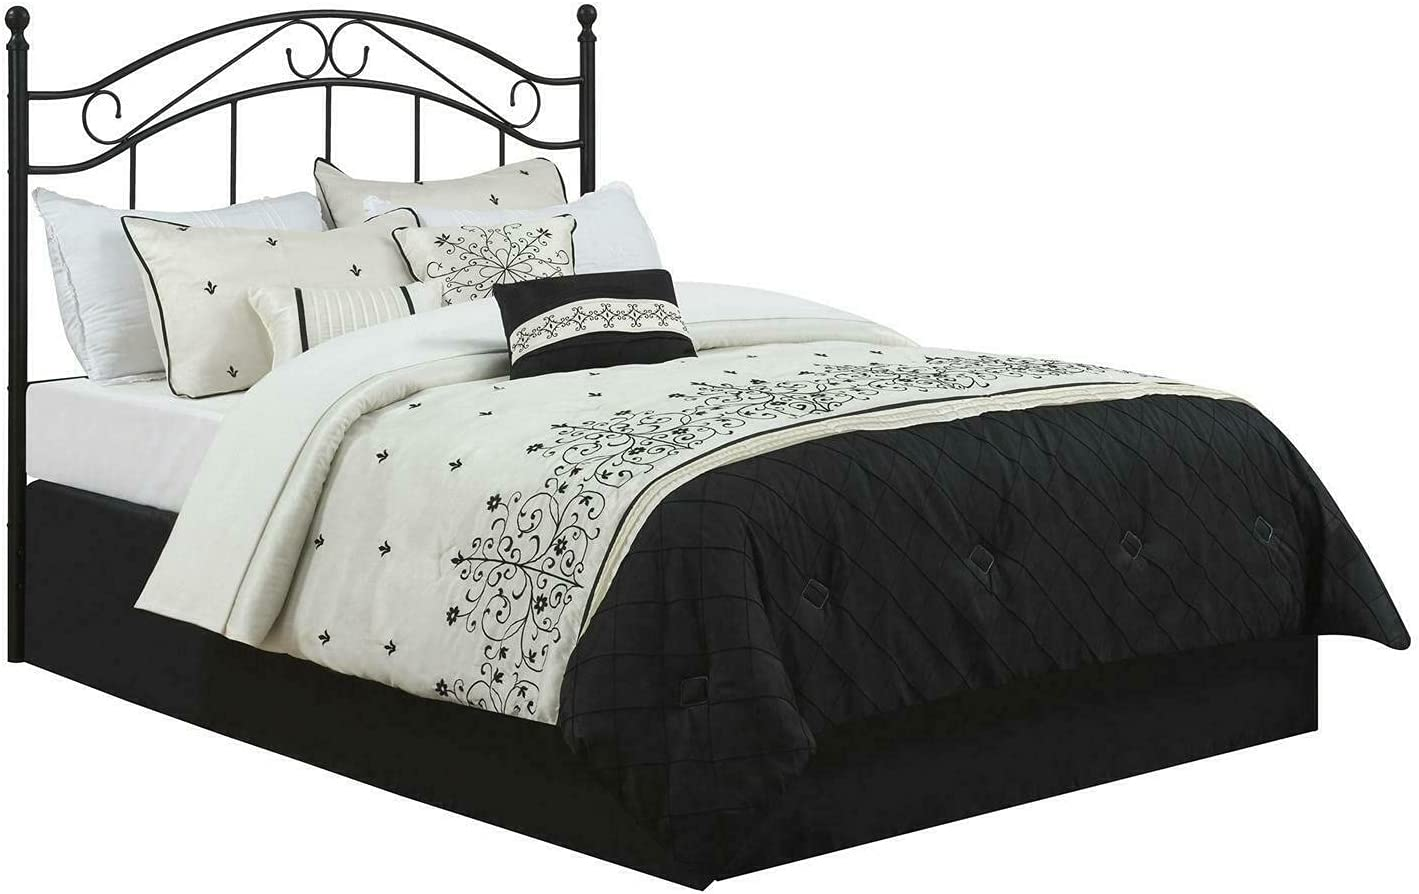 ADHW Max 85% OFF Full Queen Al sold out. Metal Headboard Traditio Bed Vintage Black Frame